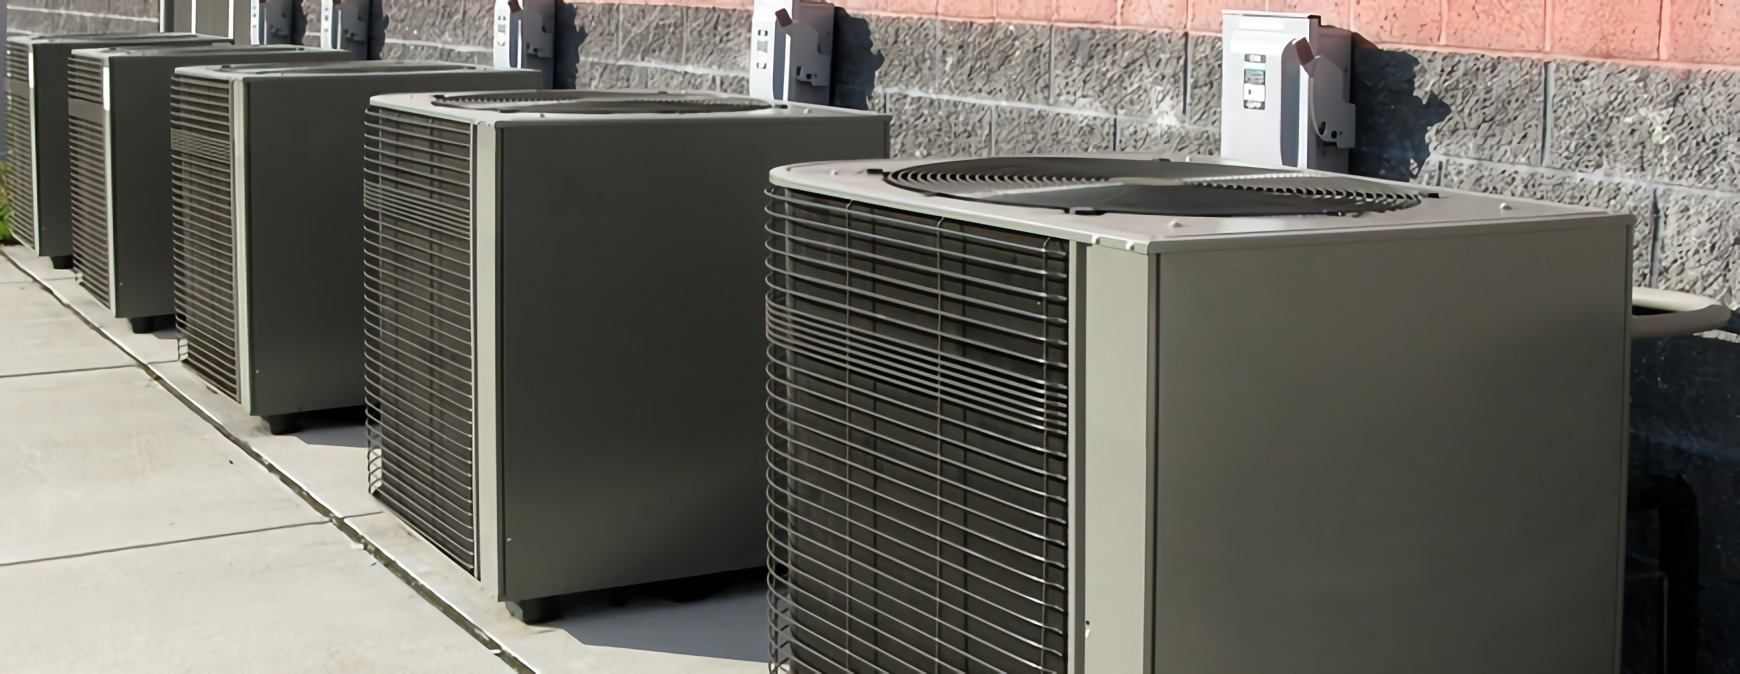 refrigeration hvac